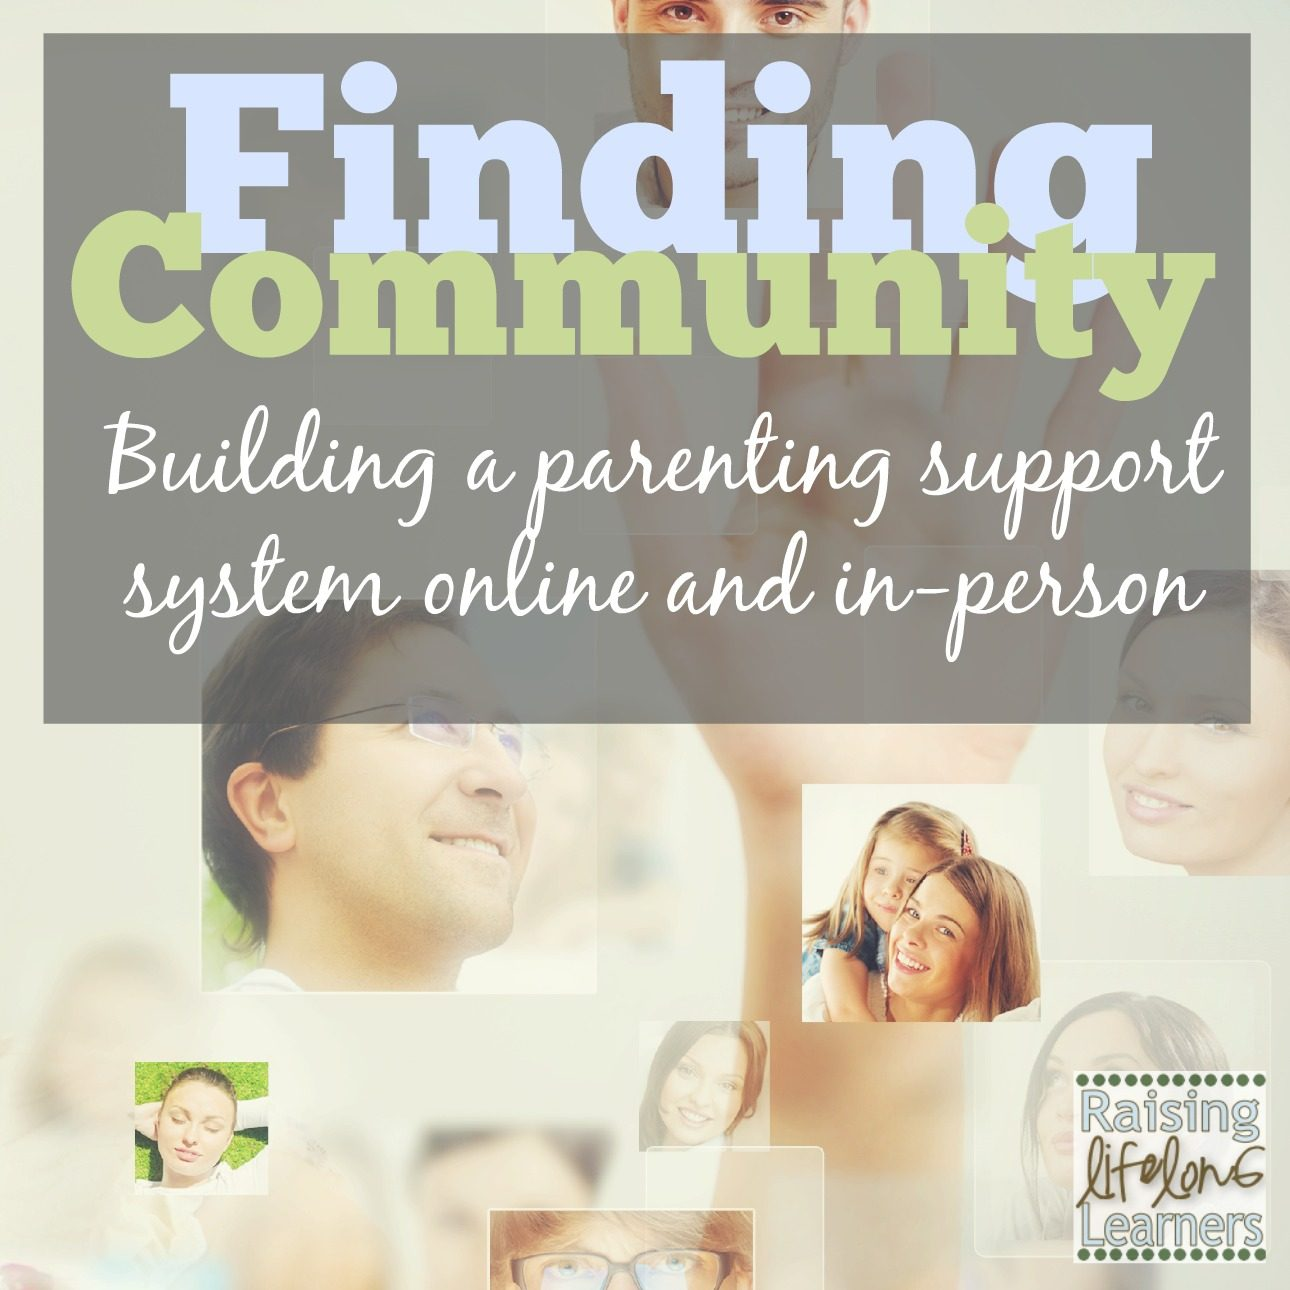 Finding Community Building A Parenting Support System